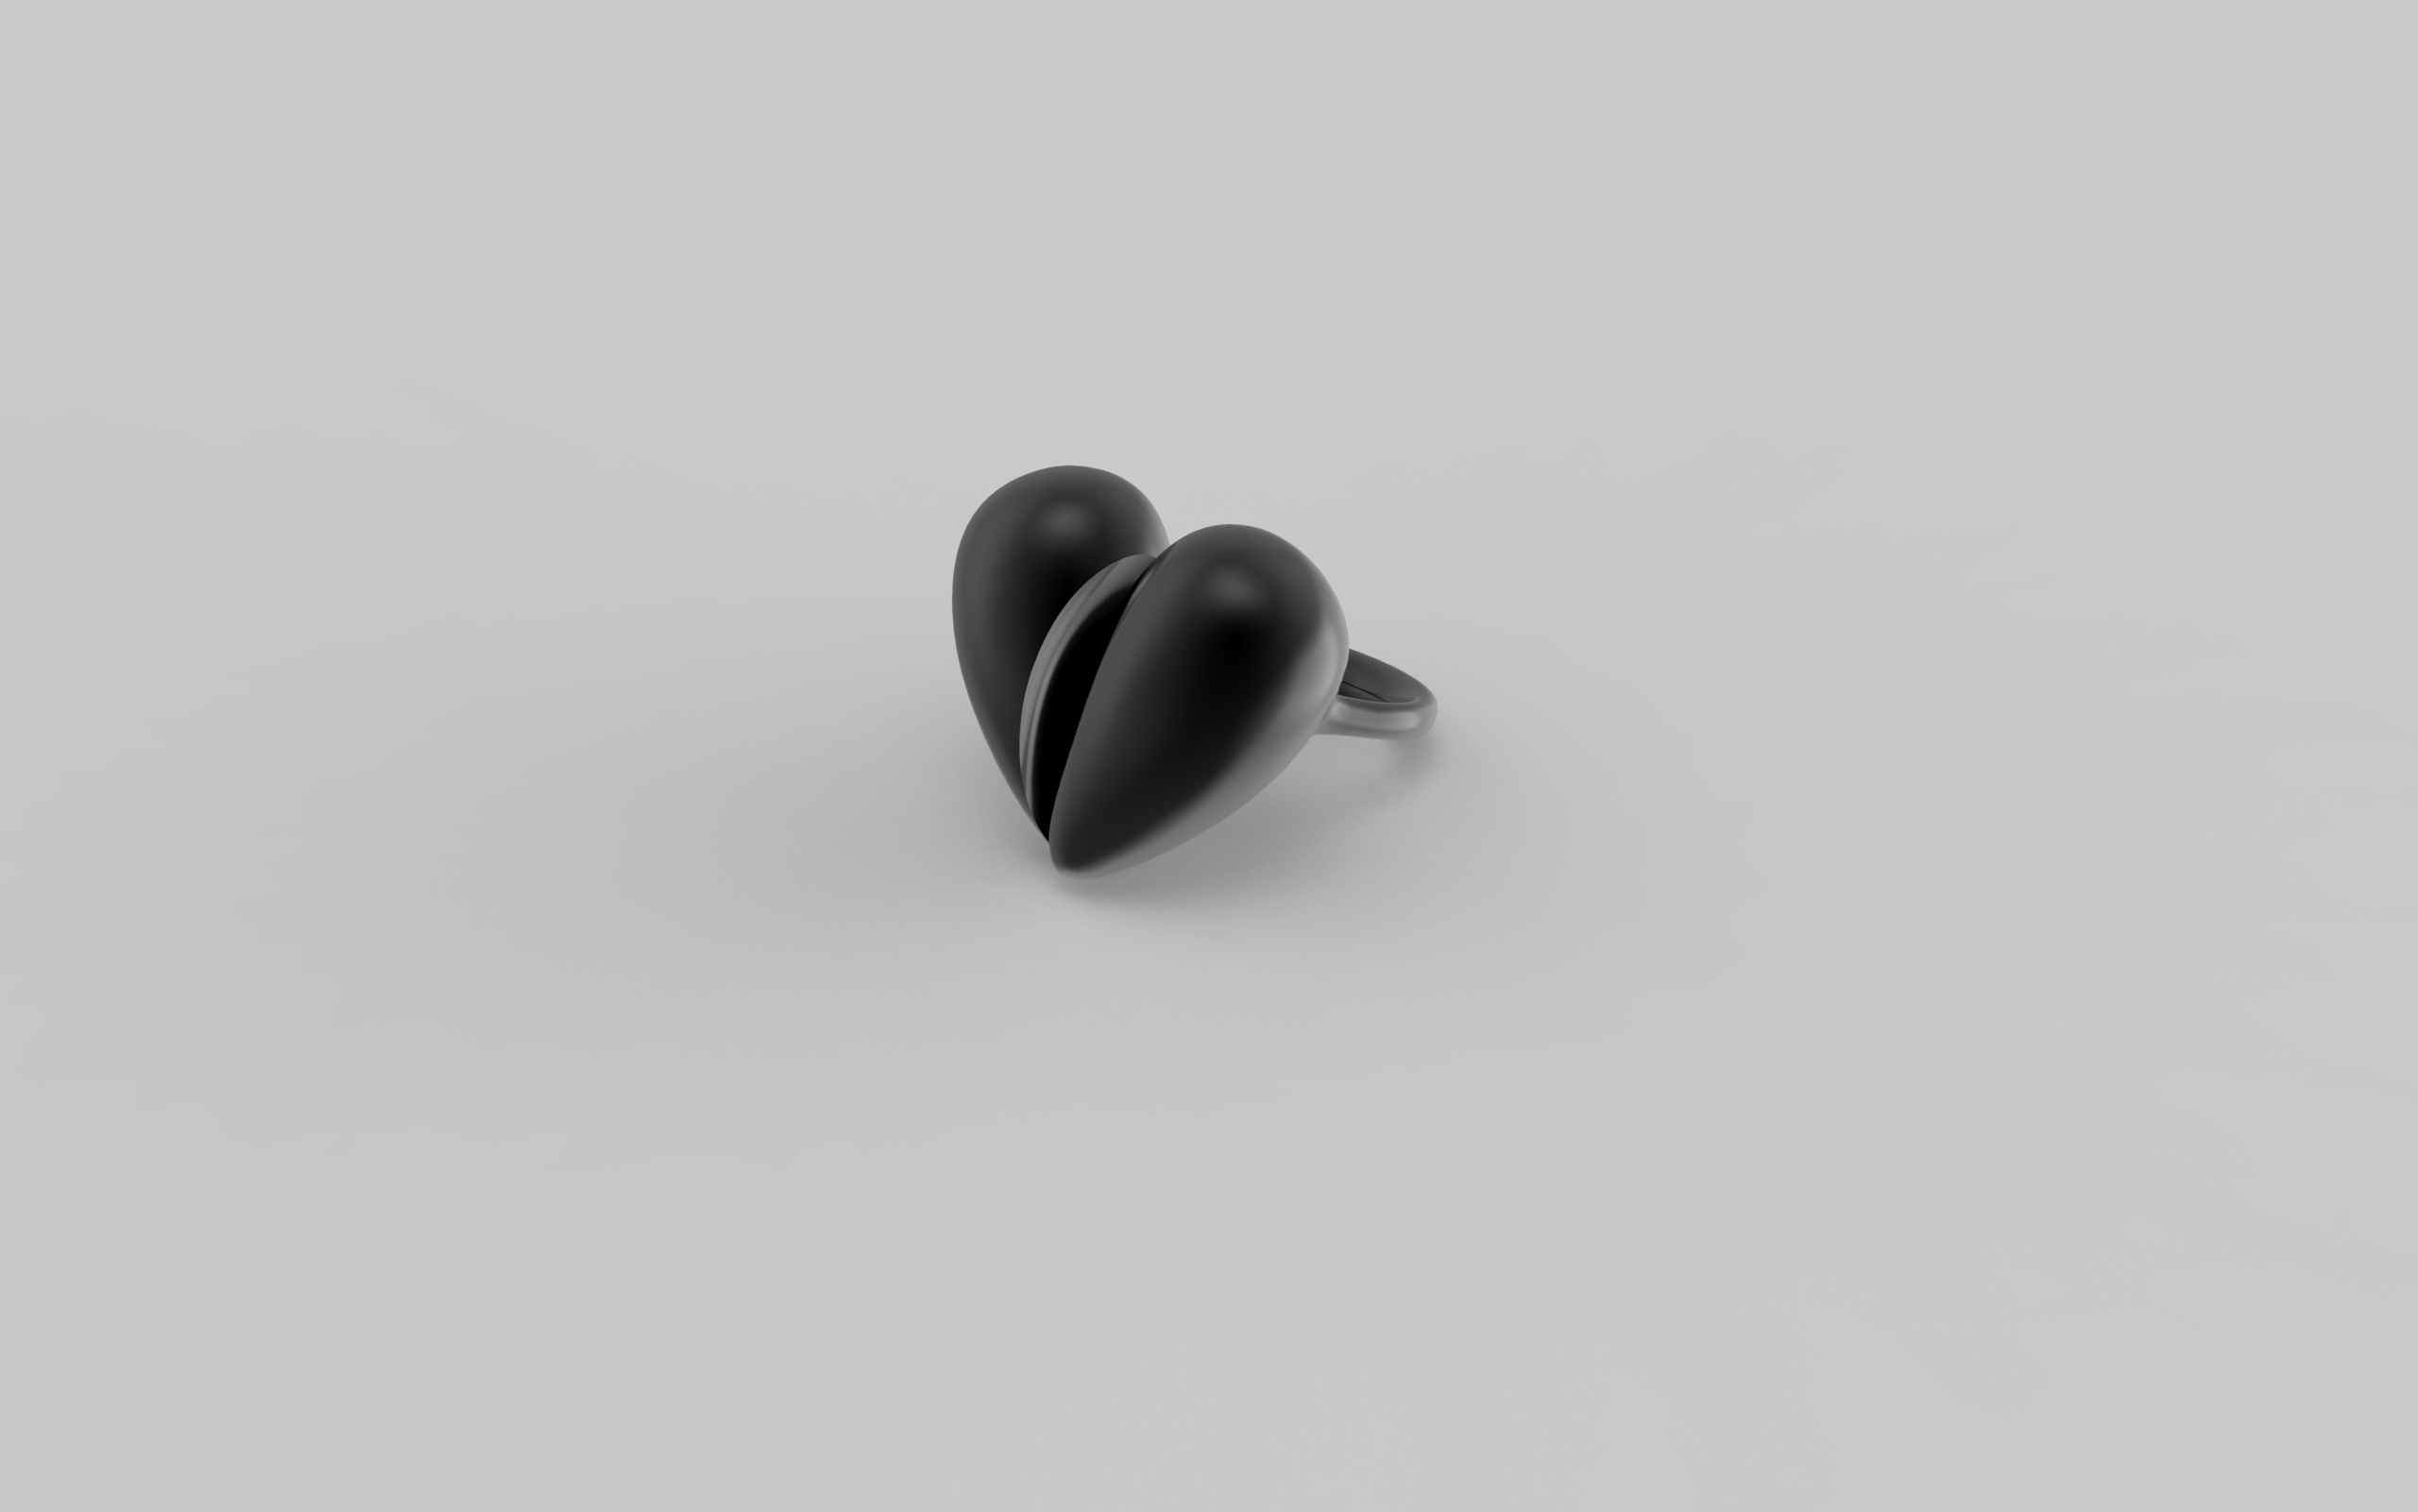 Black Love Ring in Oxidised Silver. Image, Courtesy of J Rabun